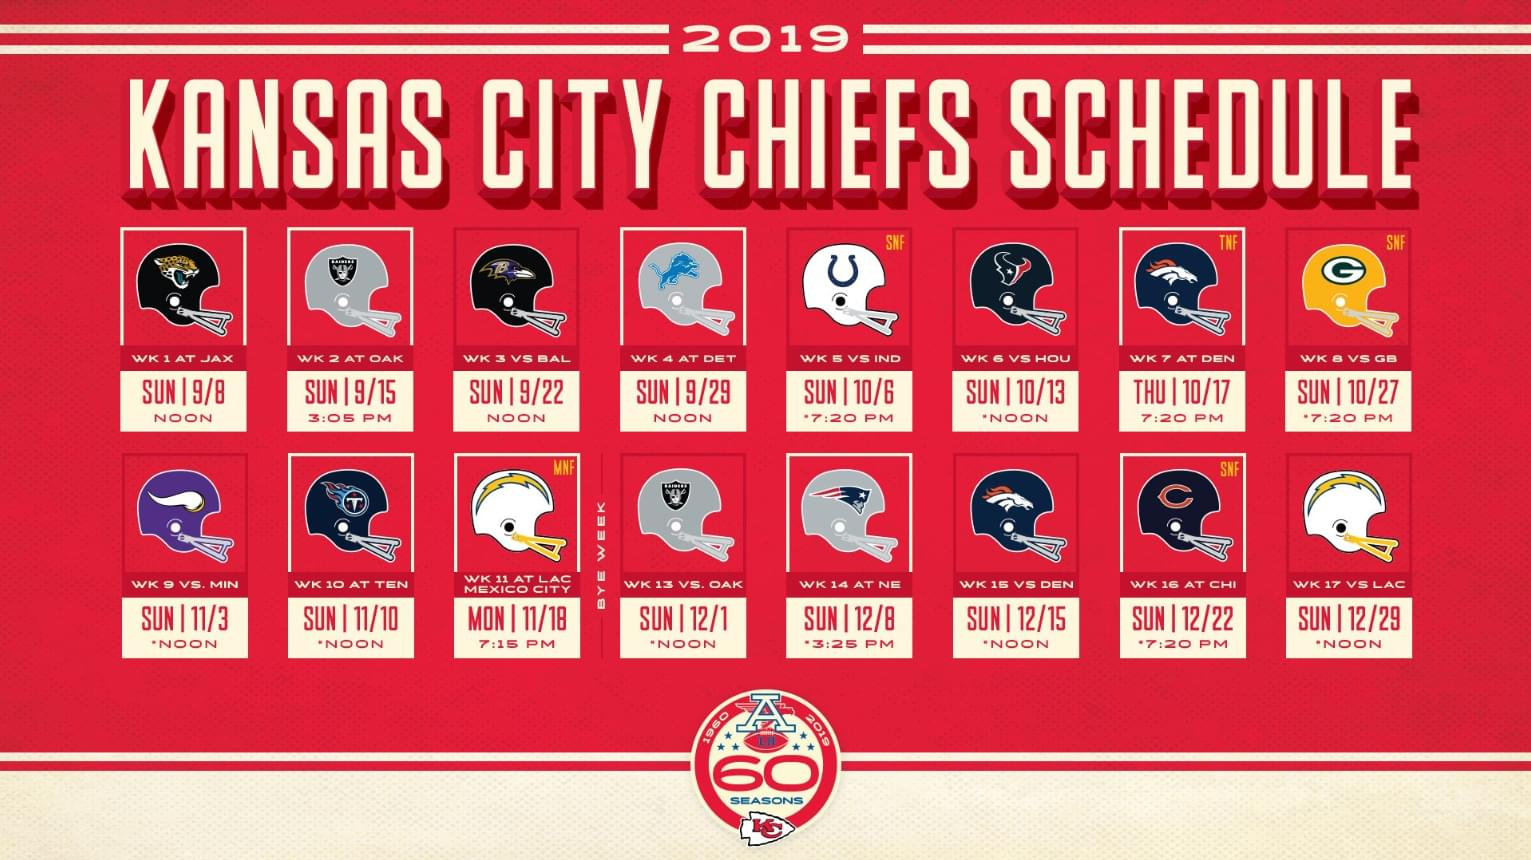 It's just a picture of Trust Kansas City Chiefs Printable Schedule